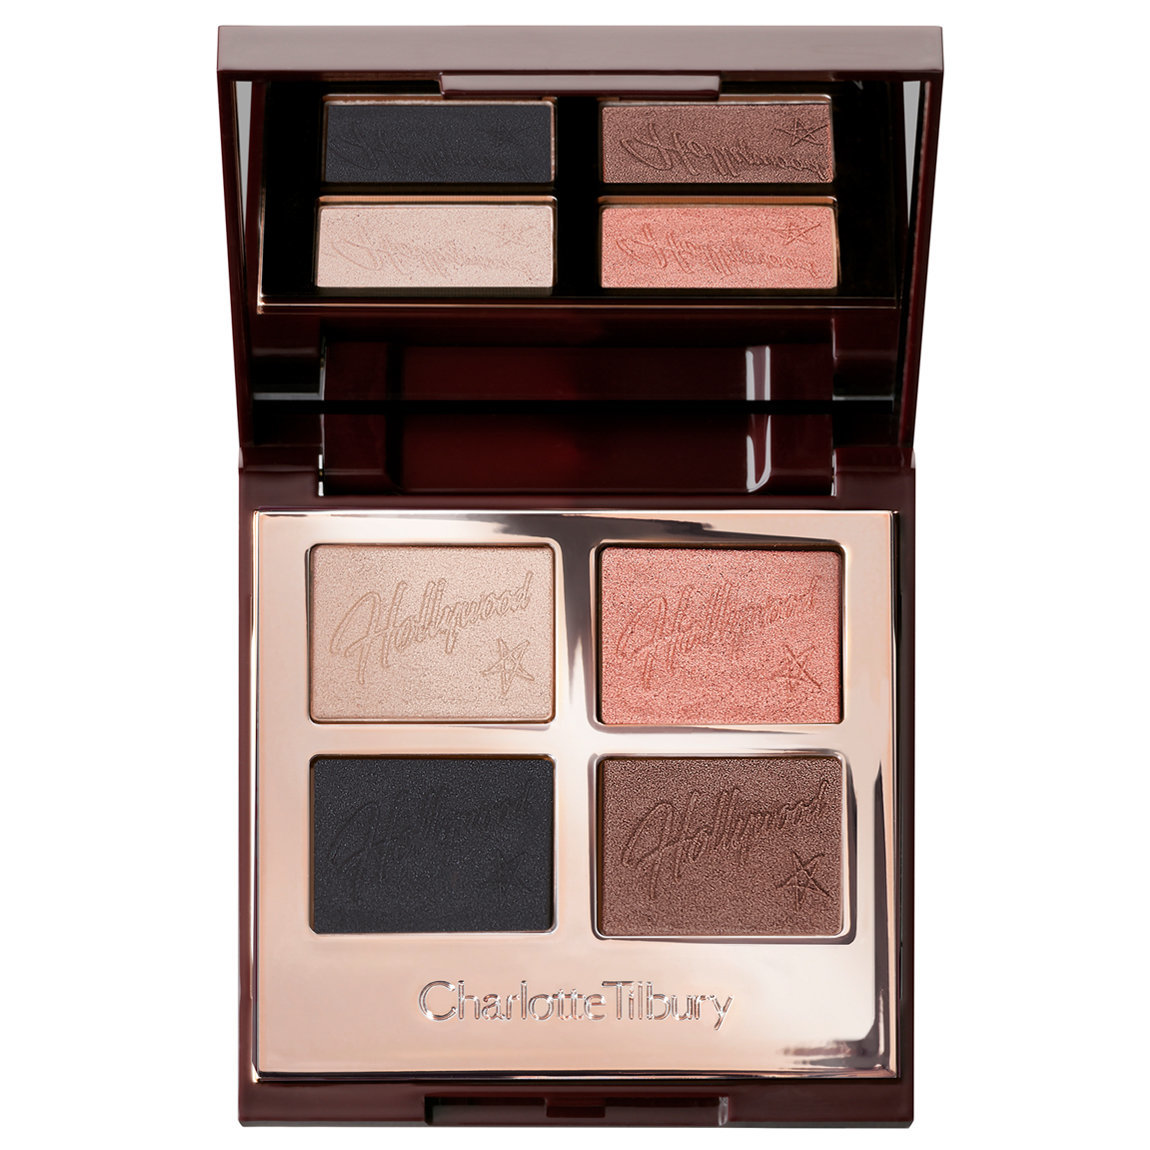 Charlotte Tilbury Hollywood Flawless Eye Filter Diva Lights alternative view 1 - product swatch.